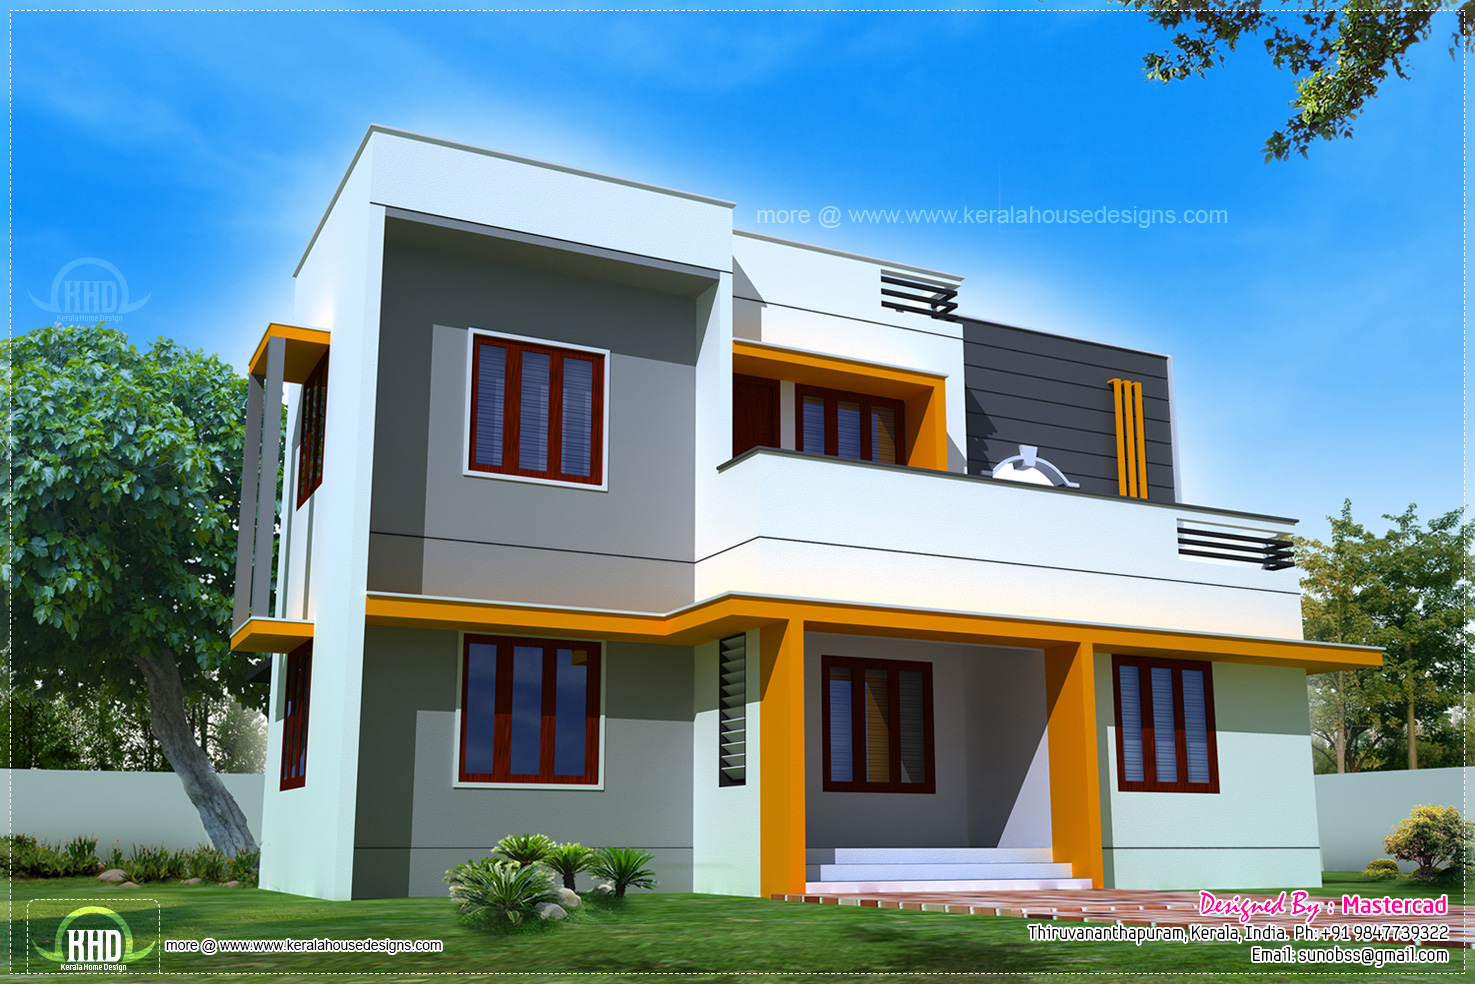 1400 modern contemporary home exterior kerala home design and floor plans Indian small house exterior design